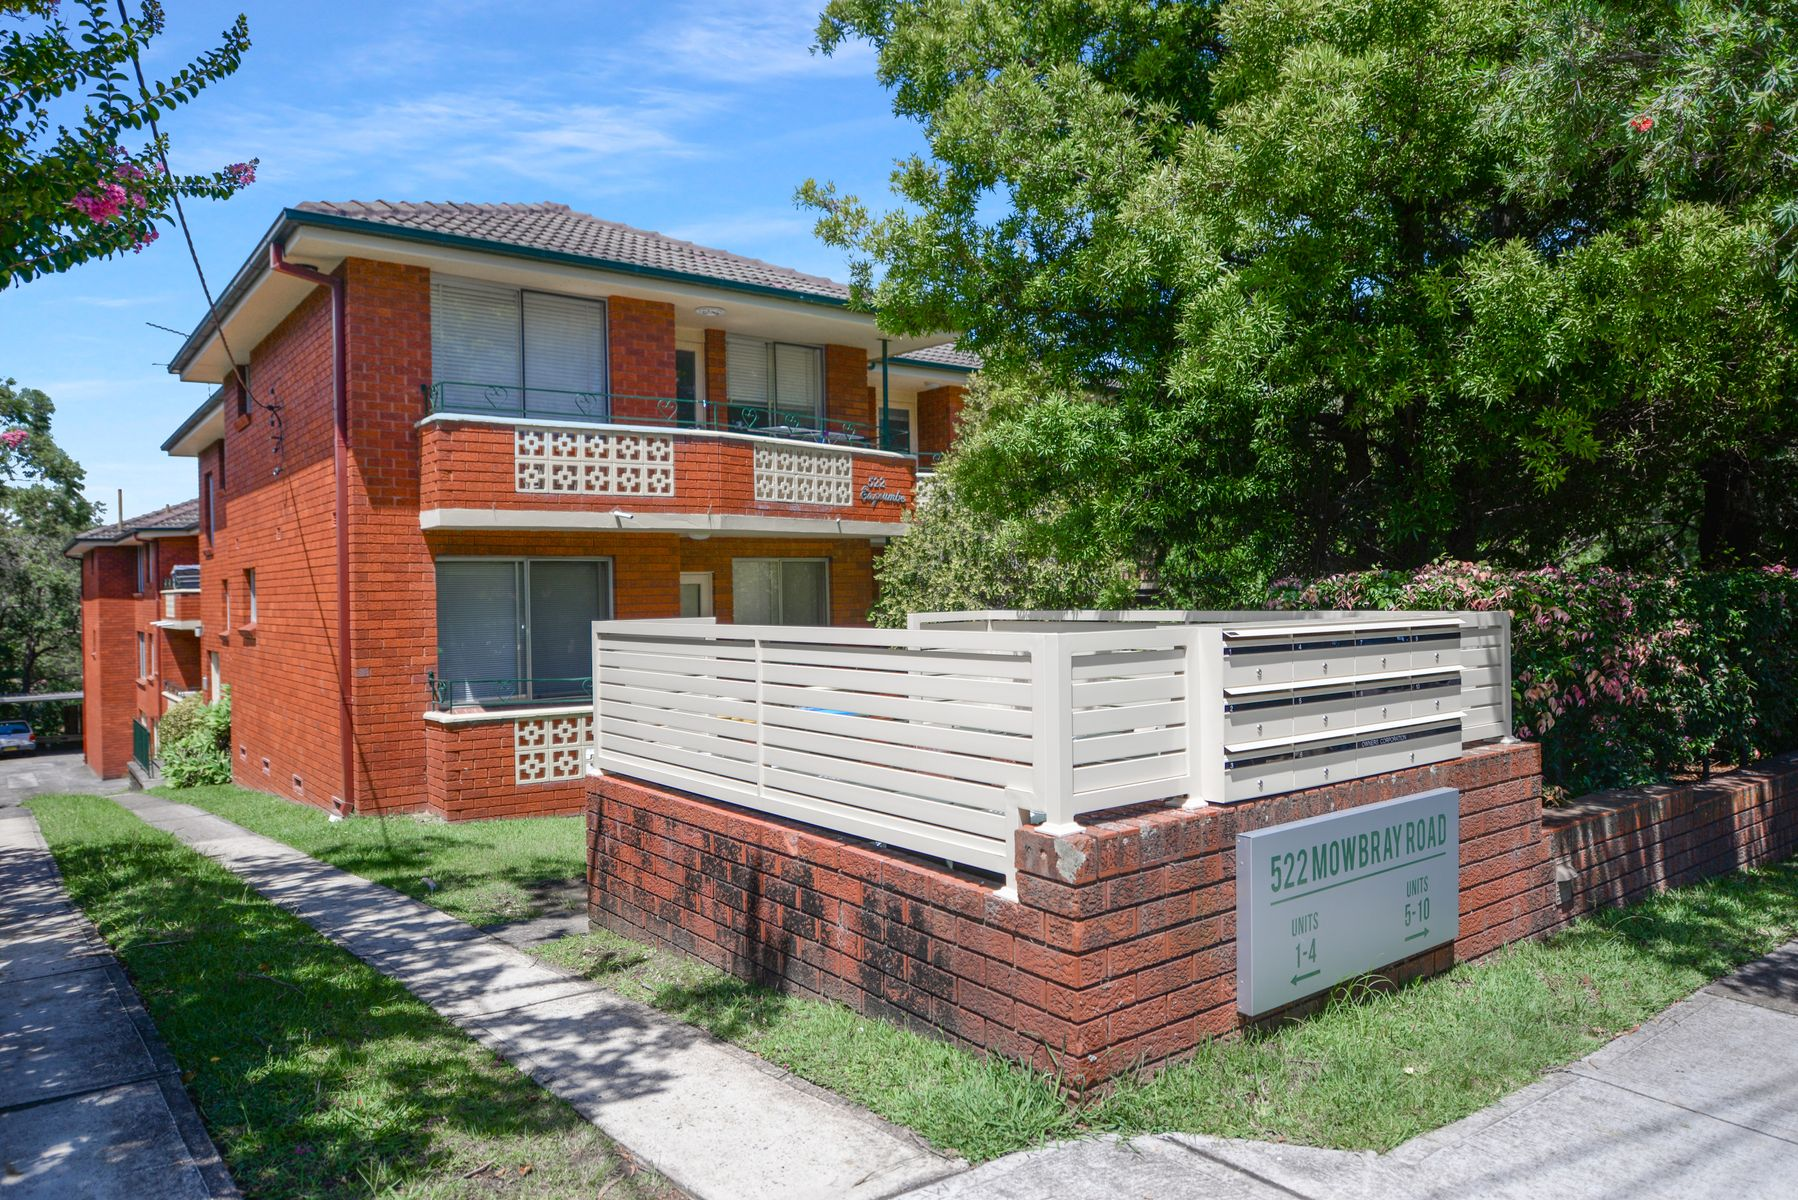 9/522 Mowbray Road, Lane Cove, NSW 2066